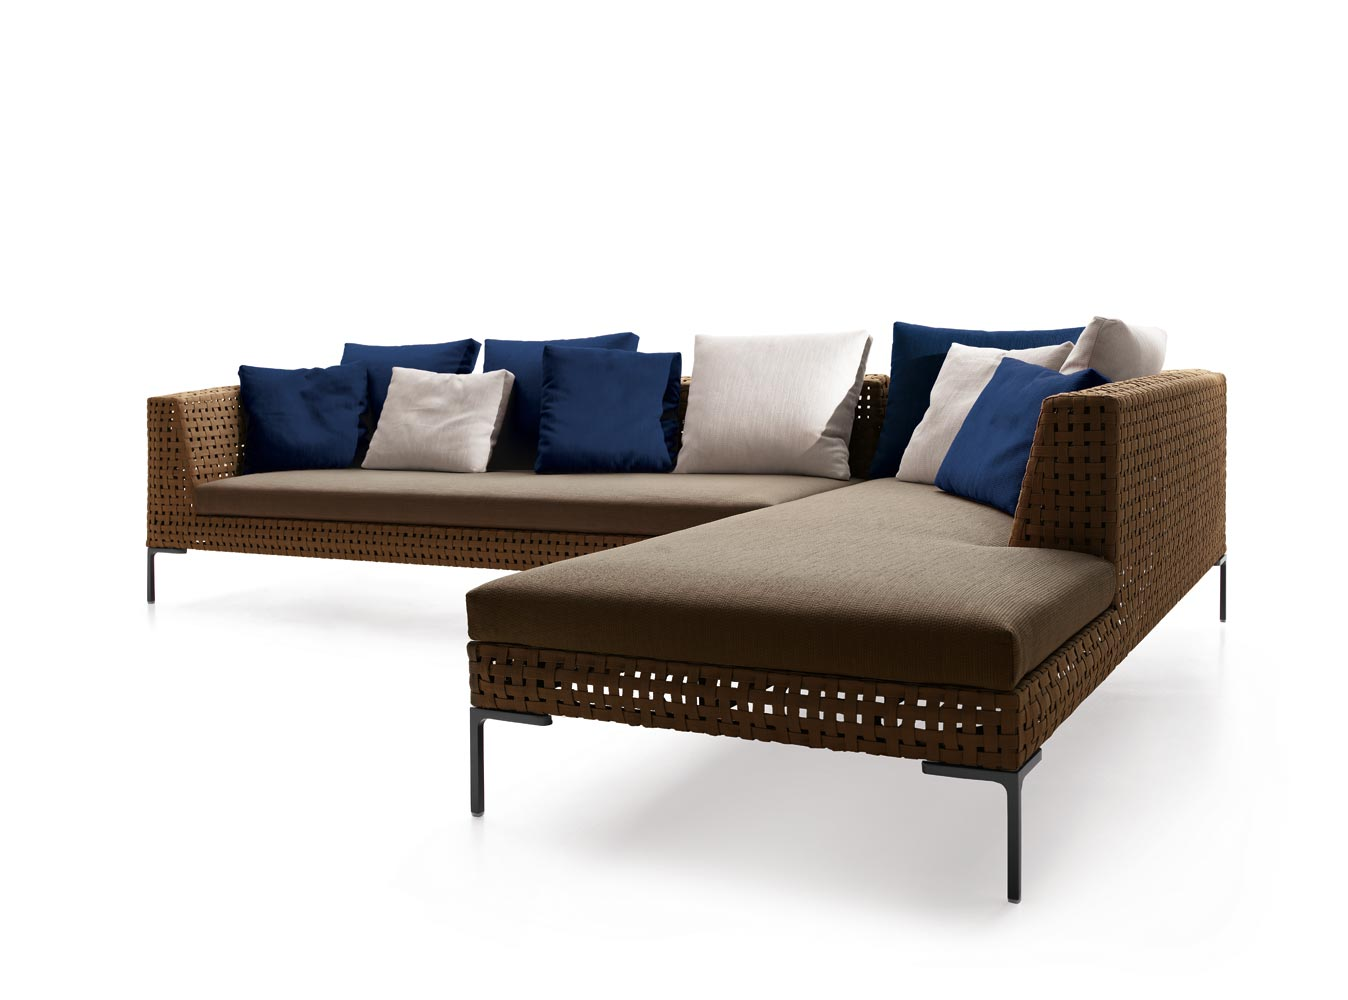 B b italia outdoor charles sofa buy from campbell watson uk for Outdoor sofa